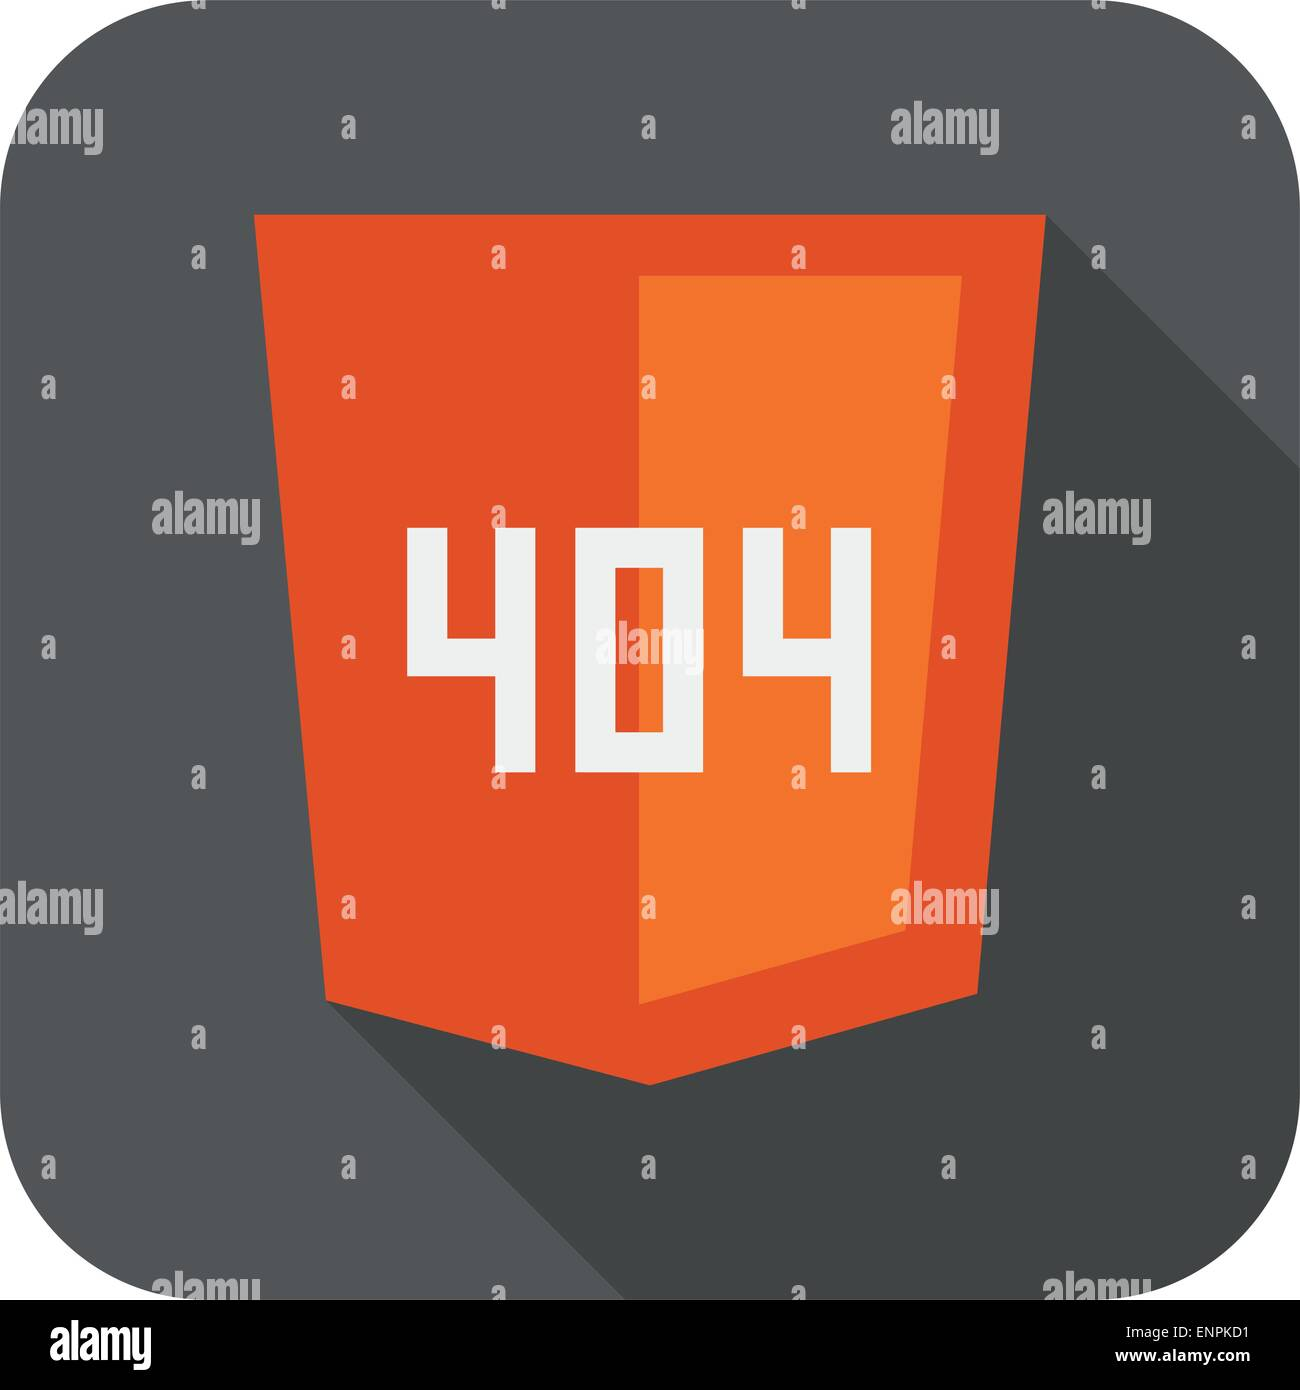 vector collection of web development shield sign with 404 error not found isolated icon - Stock Image